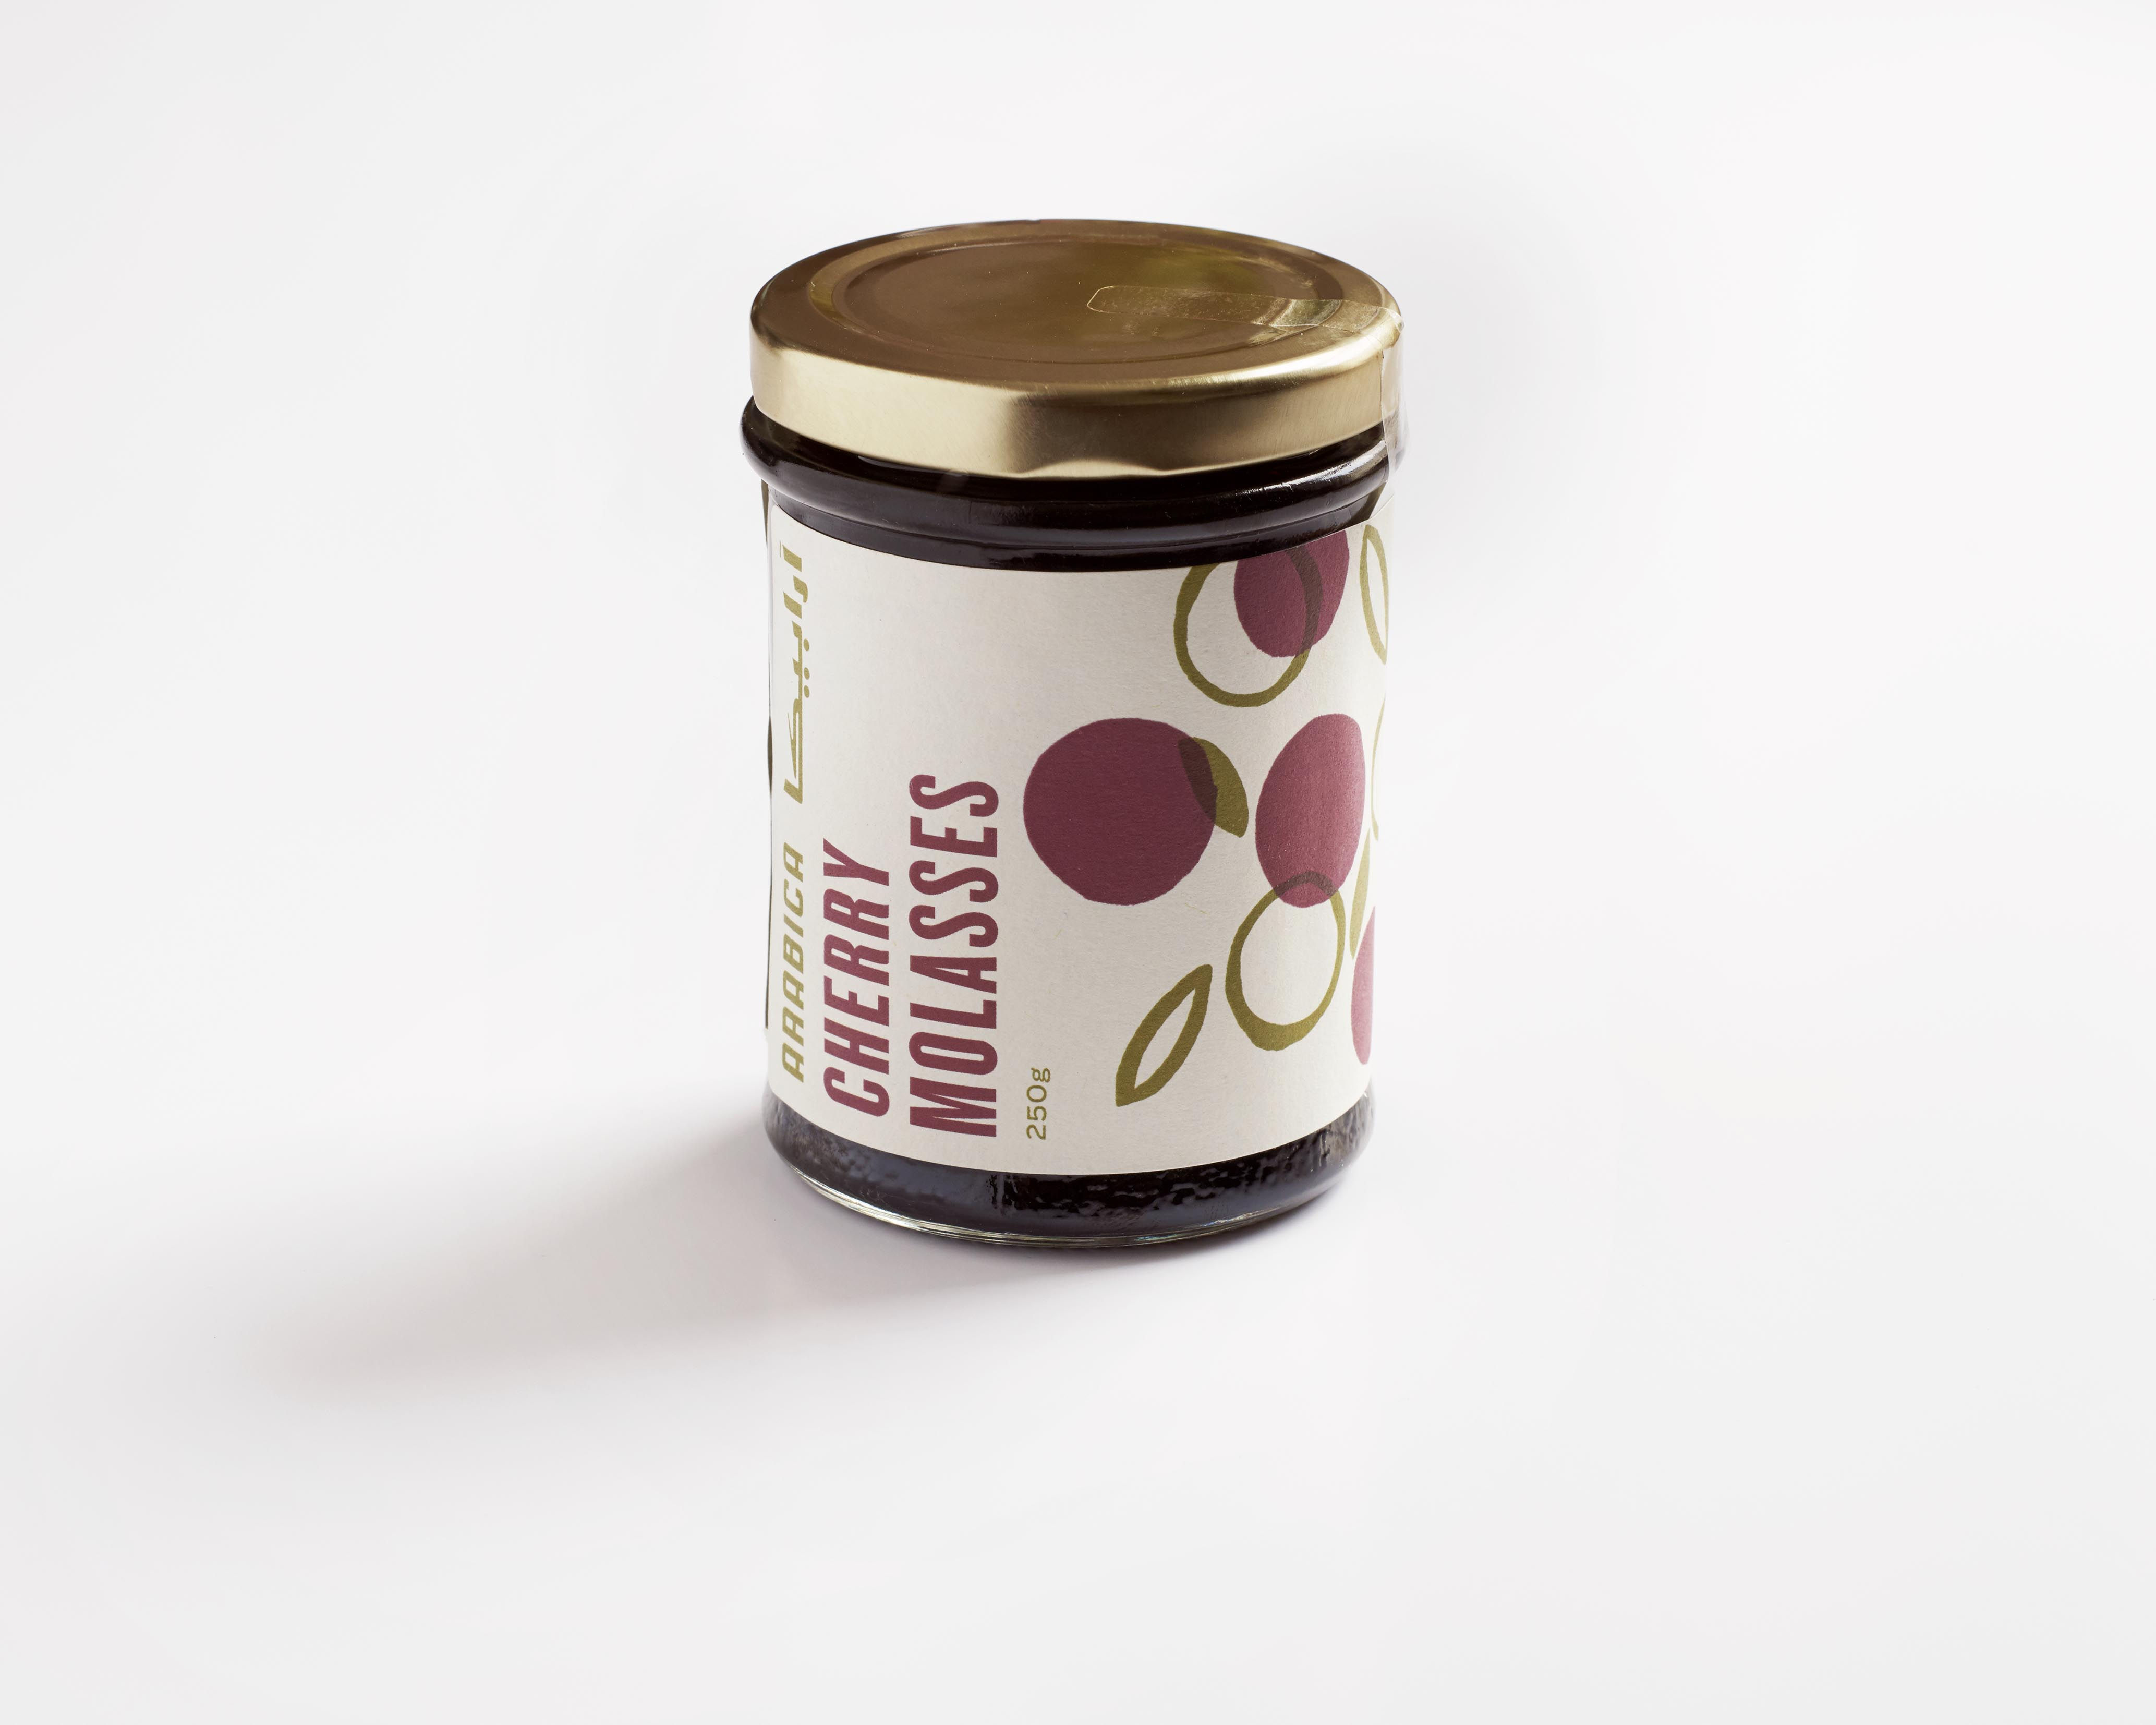 A jar on a white background. The jar is filled with Arabica Food & Spices Cherry Molasses. There is a label on the front with drawing of cherries and a gold lid on top